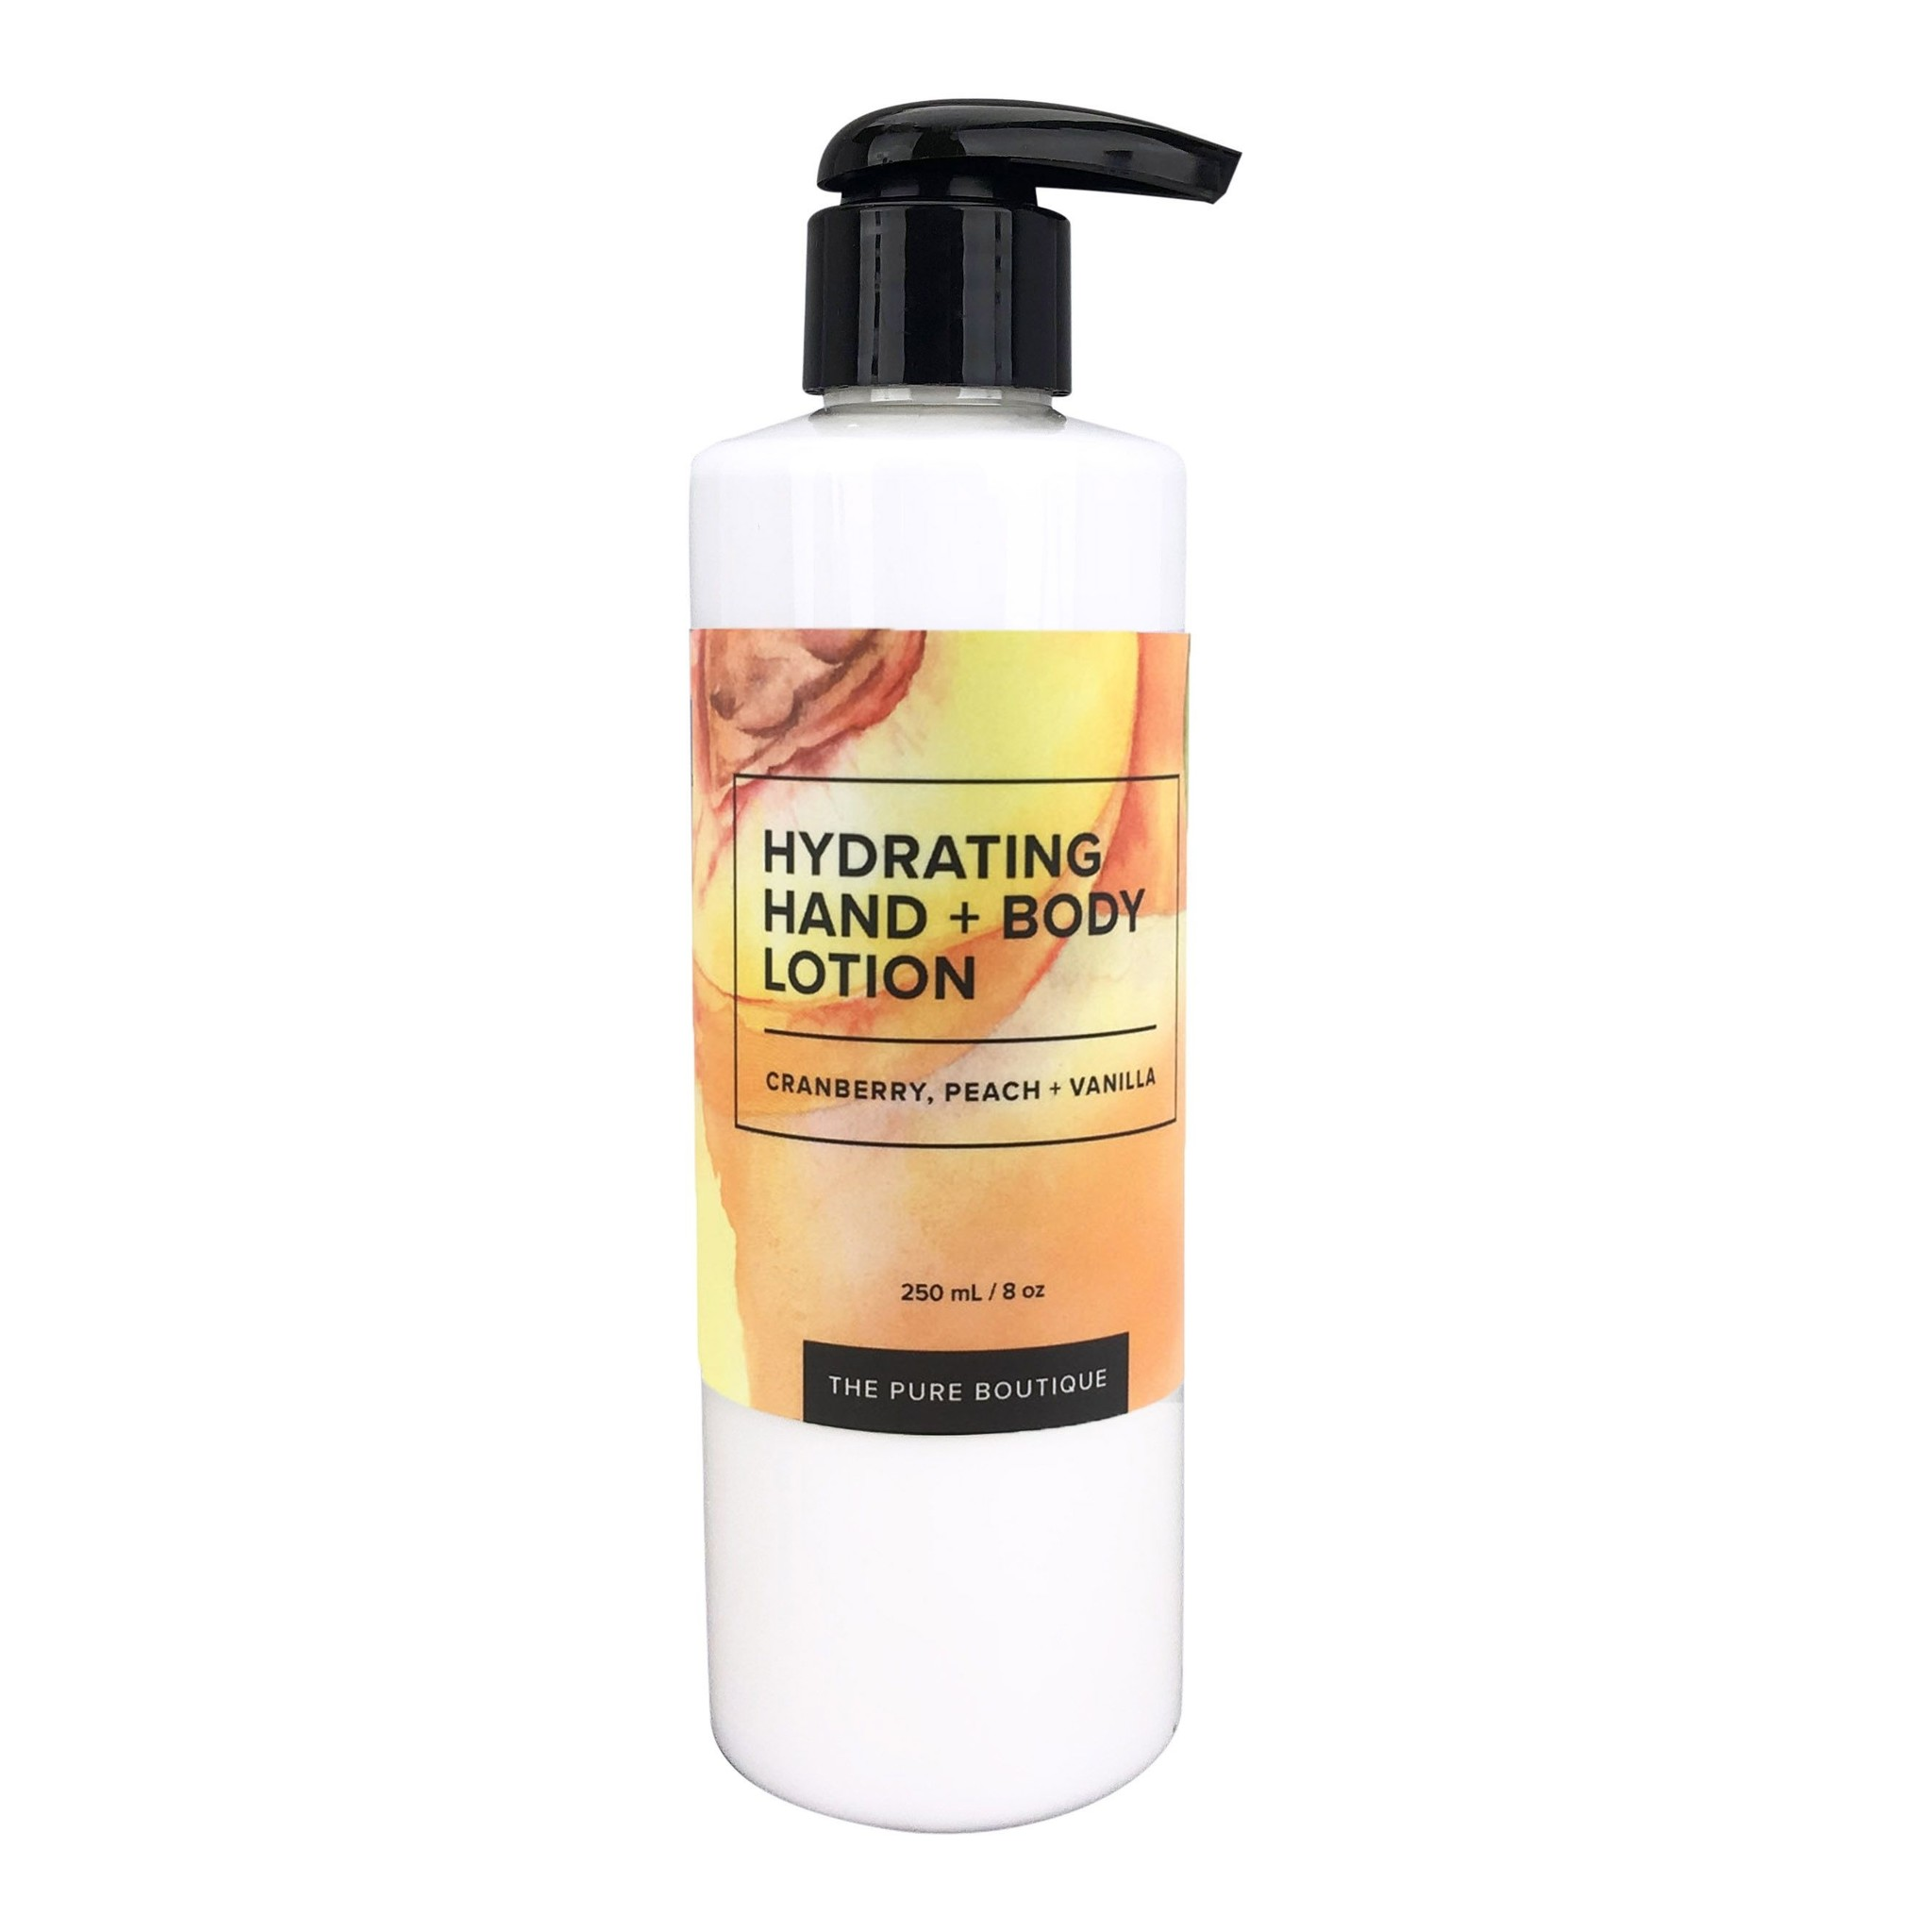 Hydrating Hand & Body Lotion - Cranberry, Peach and Vanilla-1